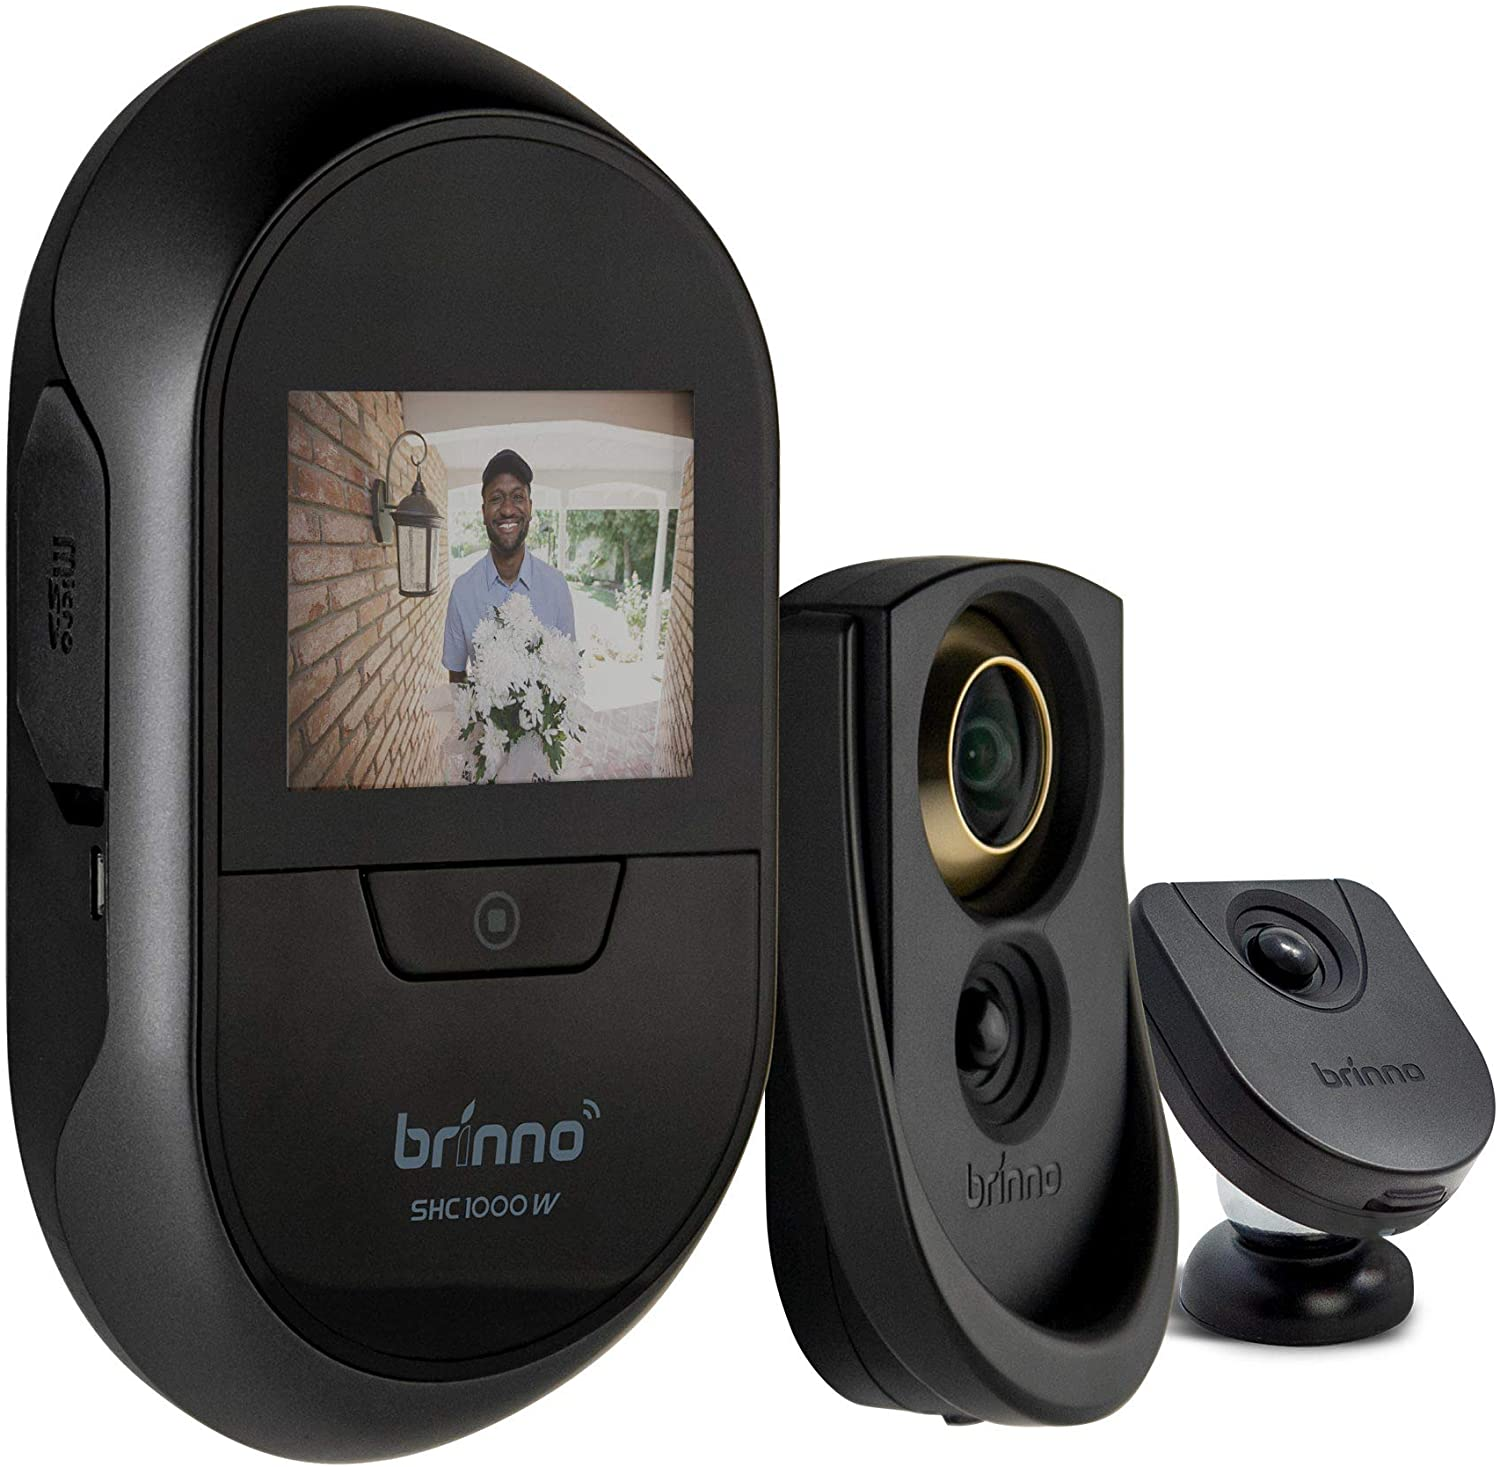 Brinno Duo SHC1000W Smart Home Concealed Peephole Camera 12mm Size Remote Access DIY Install Data Privacy